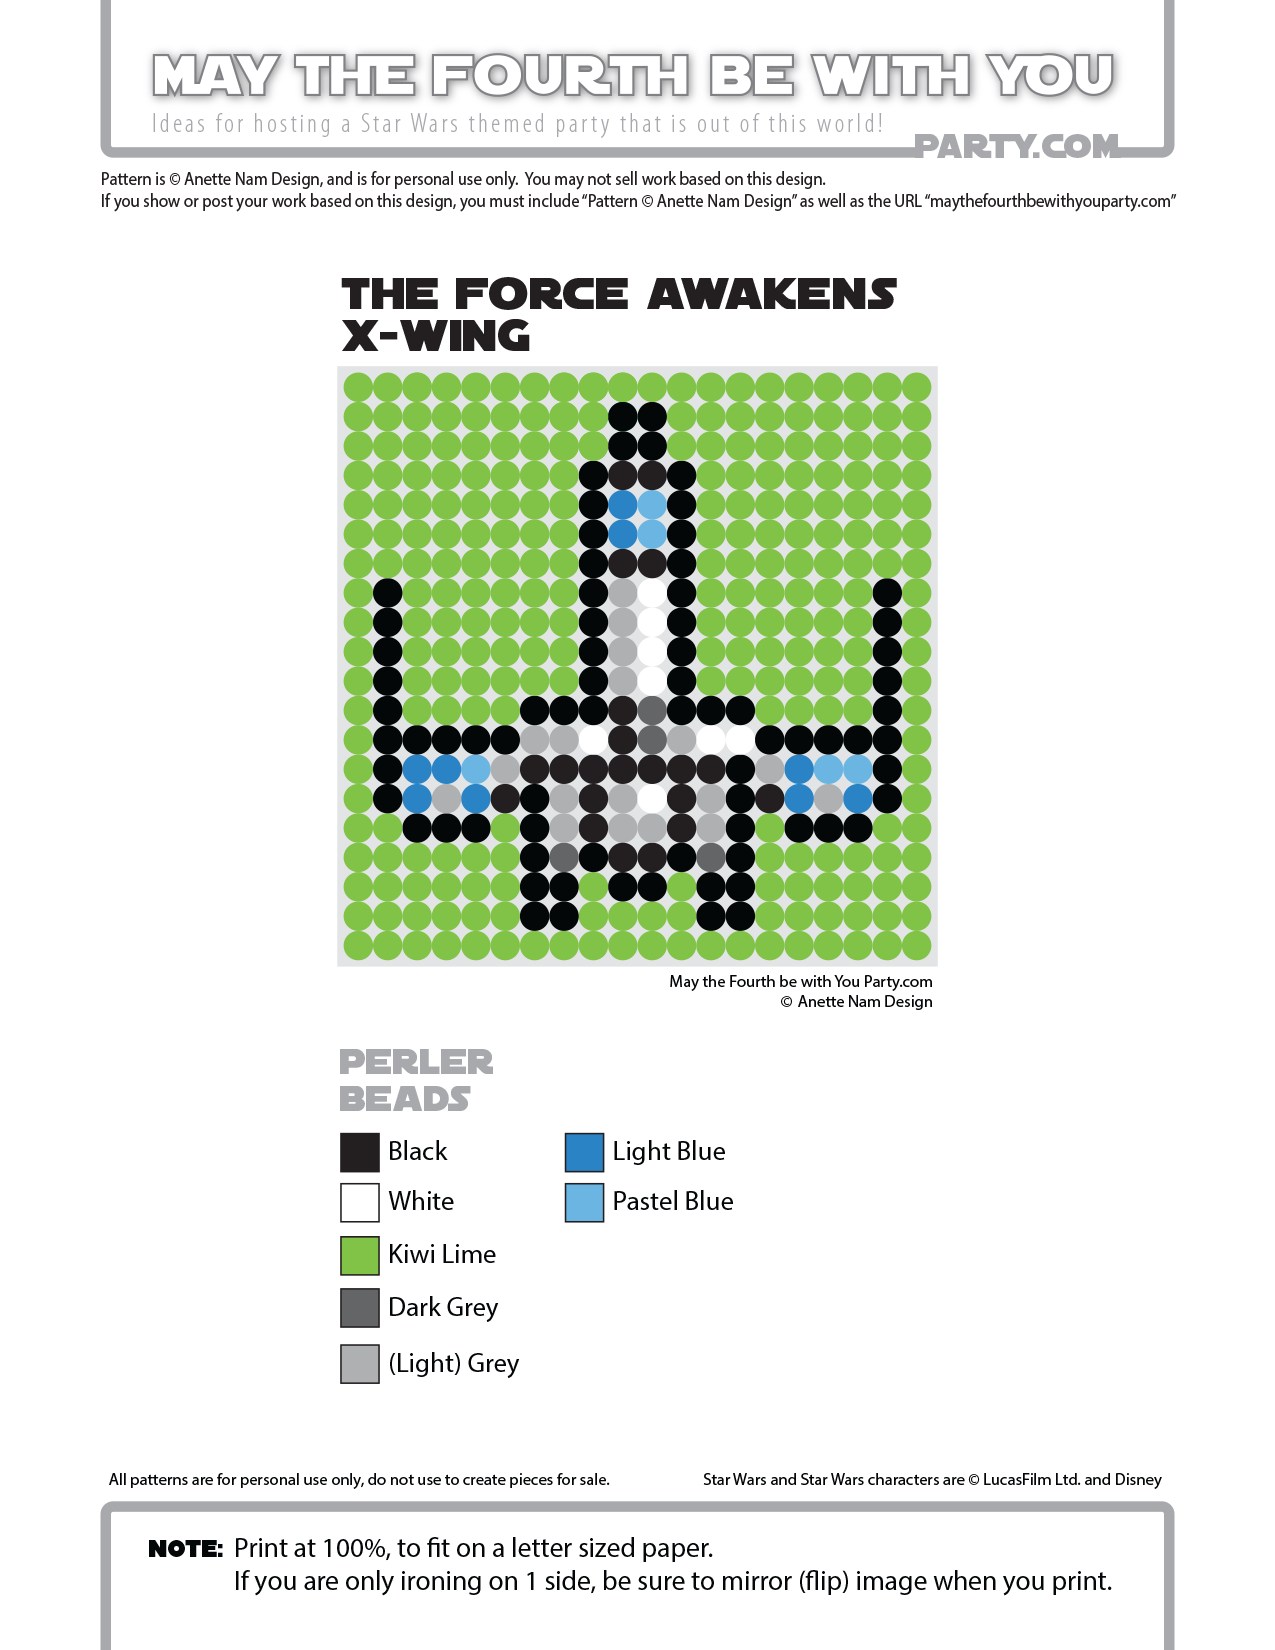 The Force Awakens T 70 X Wing Perler Pixel Patterns May